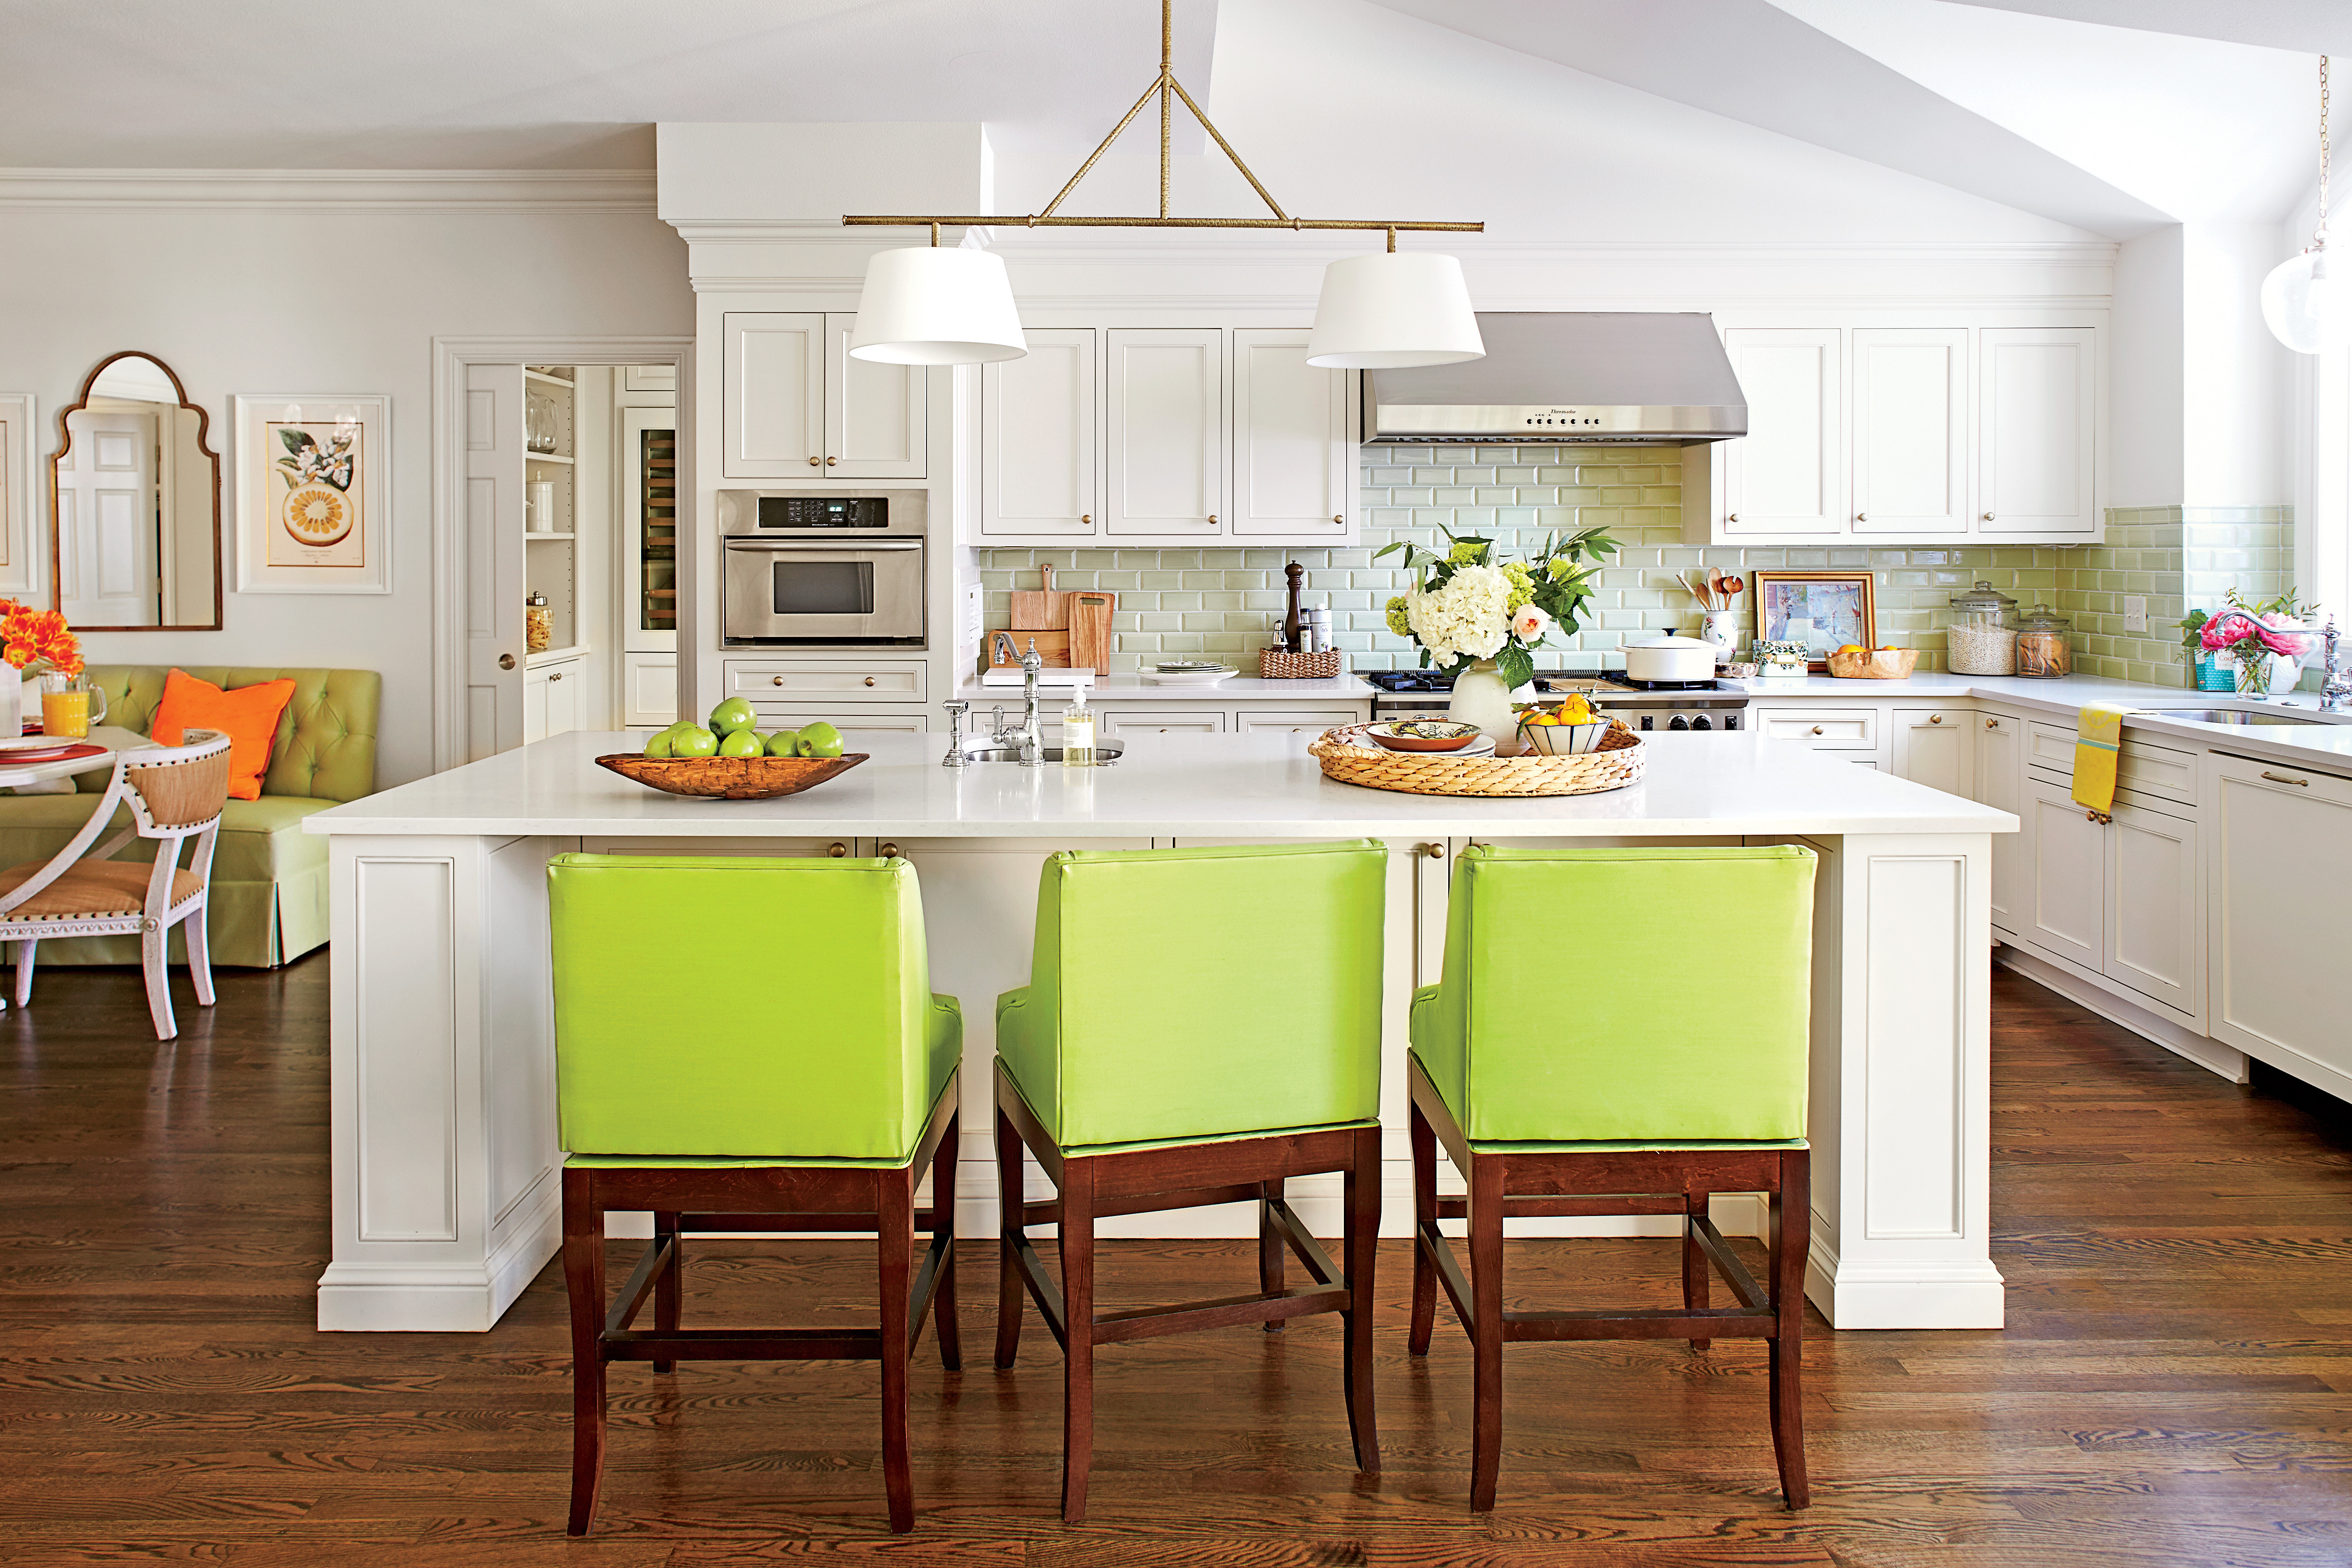 Restaurant Supply Long Island 6 Foot Kitchen Island Ideas